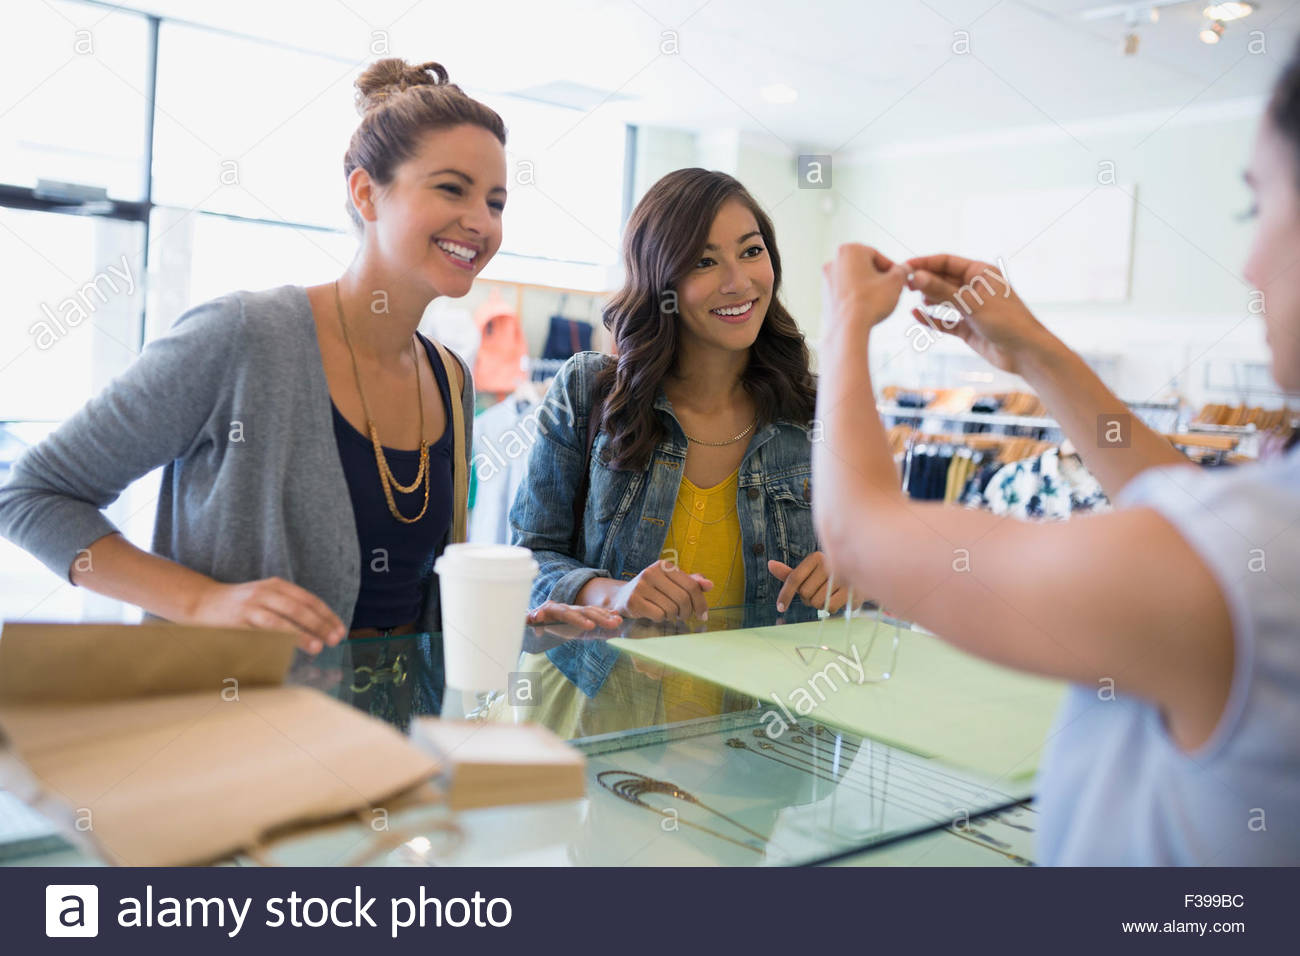 Women buying necklace at shop counter - Stock Image